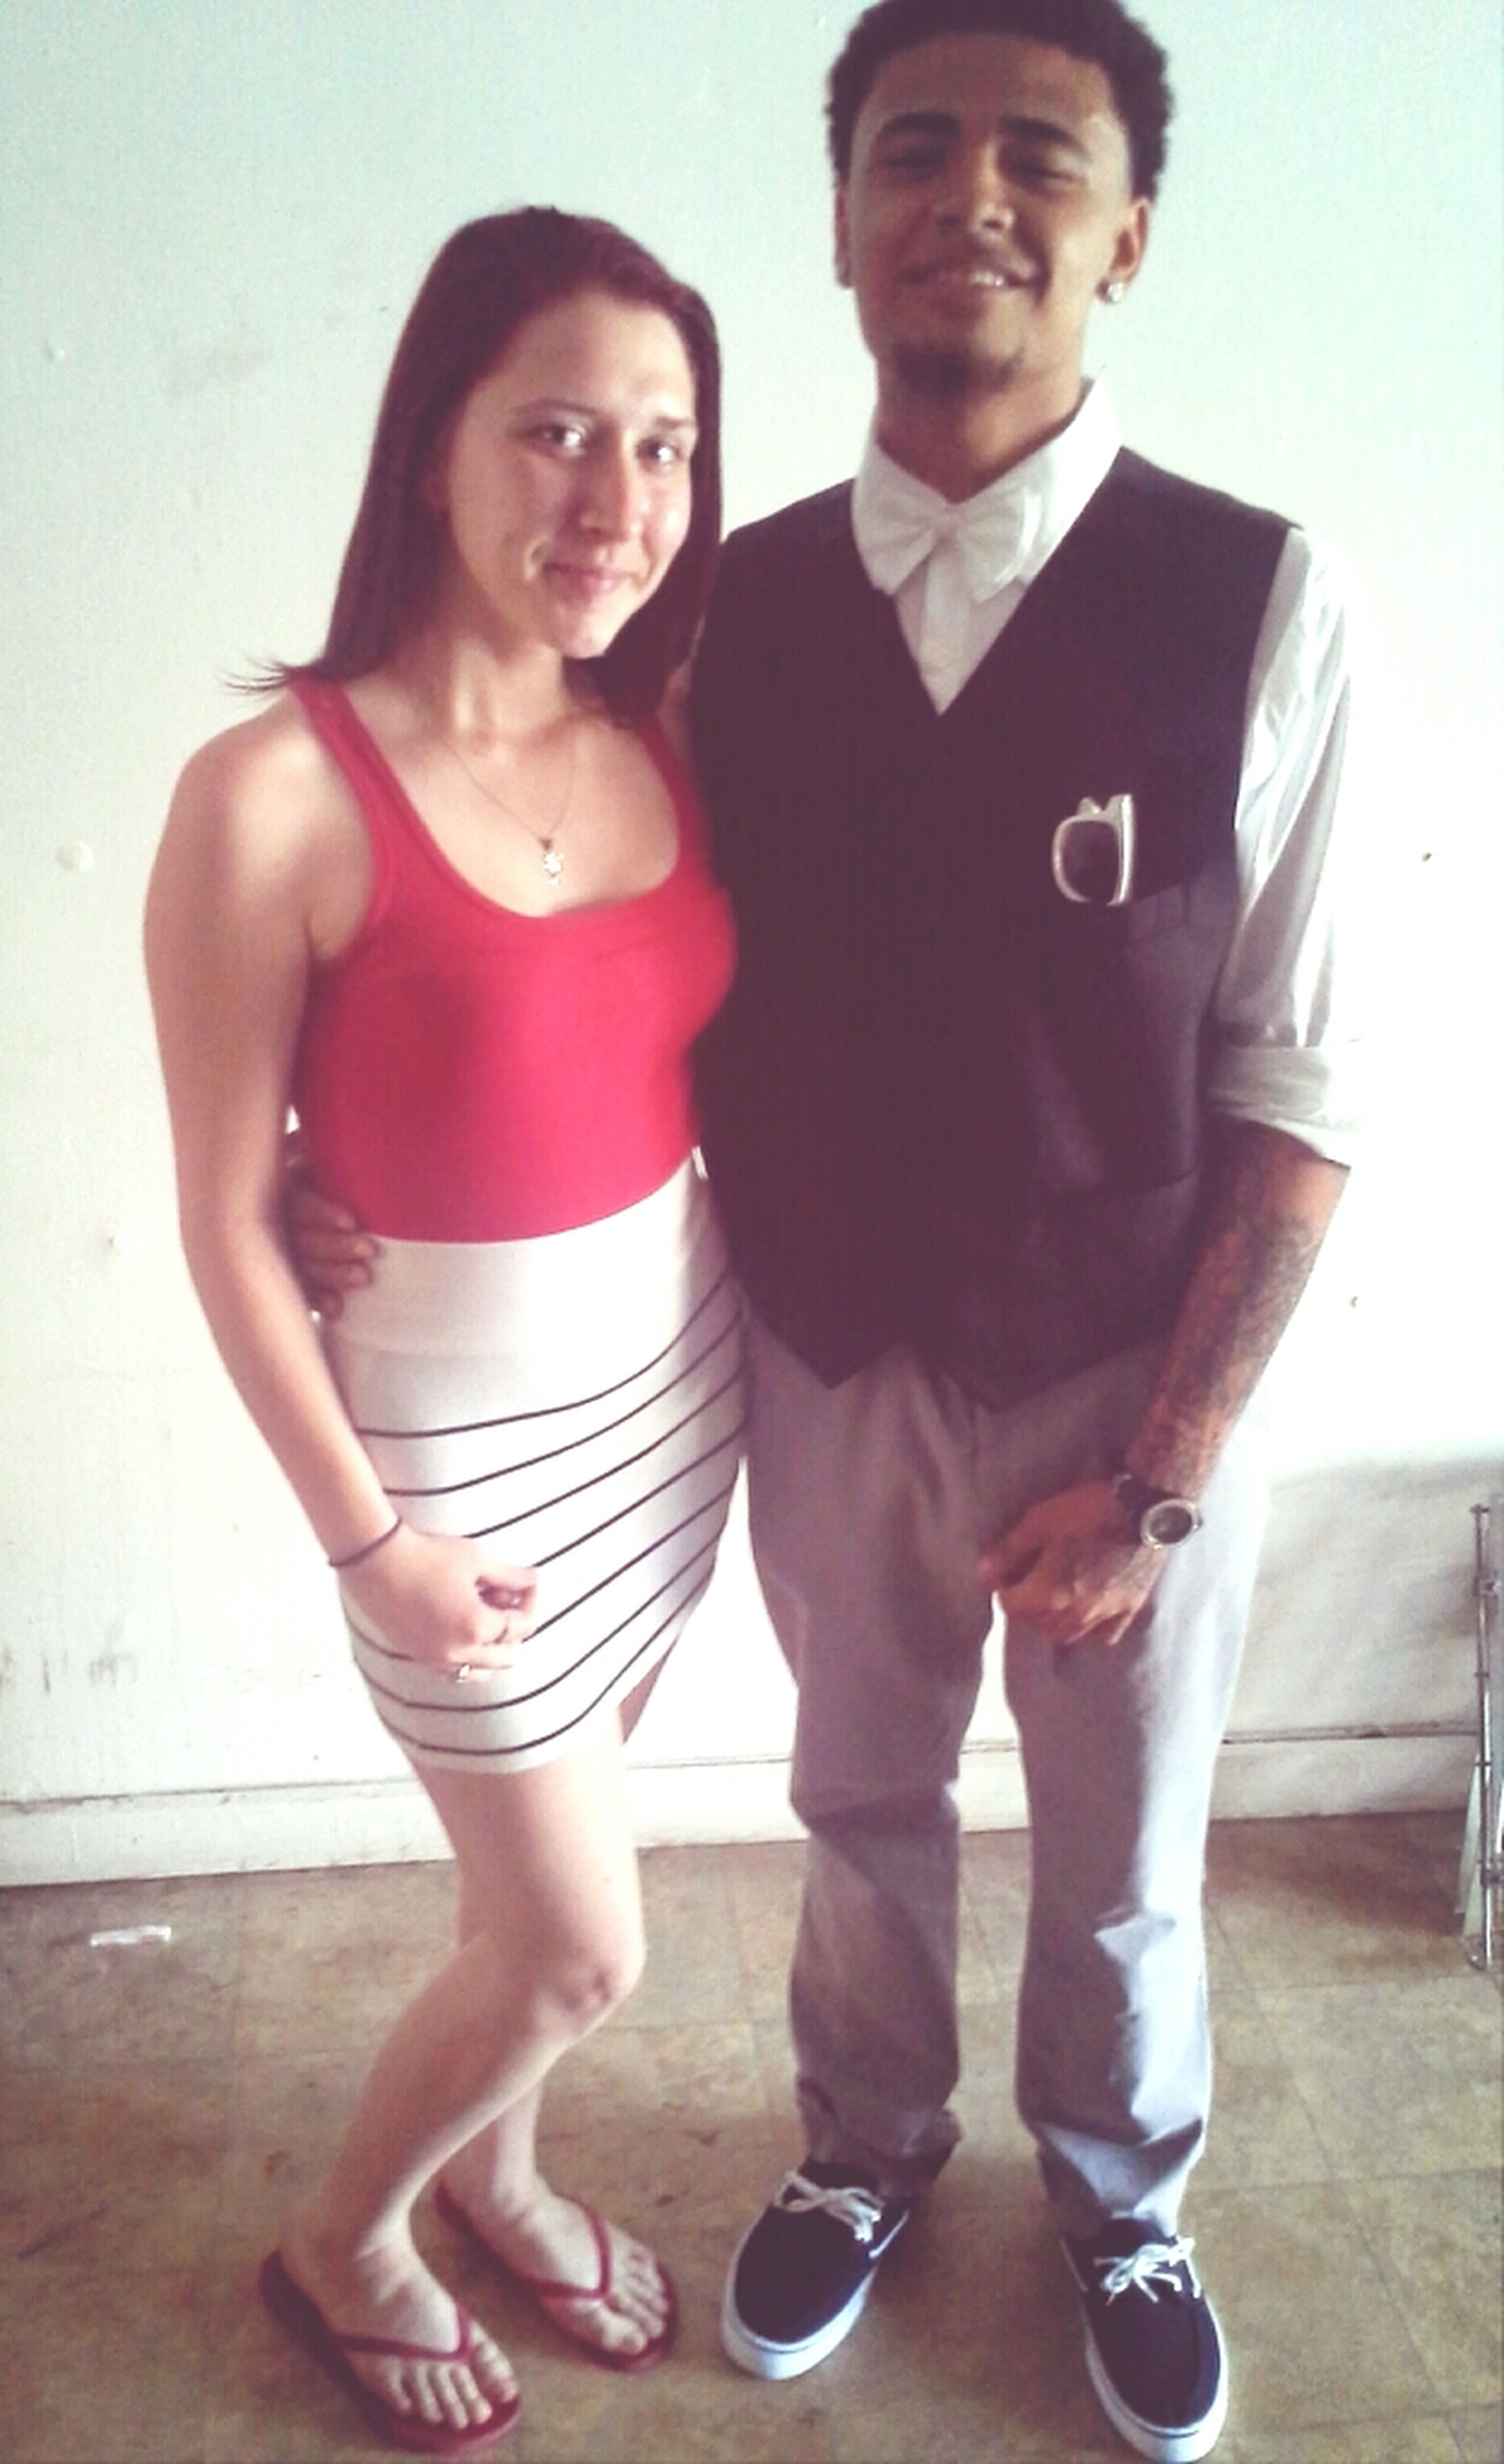 Me And My Stats Brother Hector. Have Fun At Prom LICK & Be Safe!! :) #StatsFamForLife